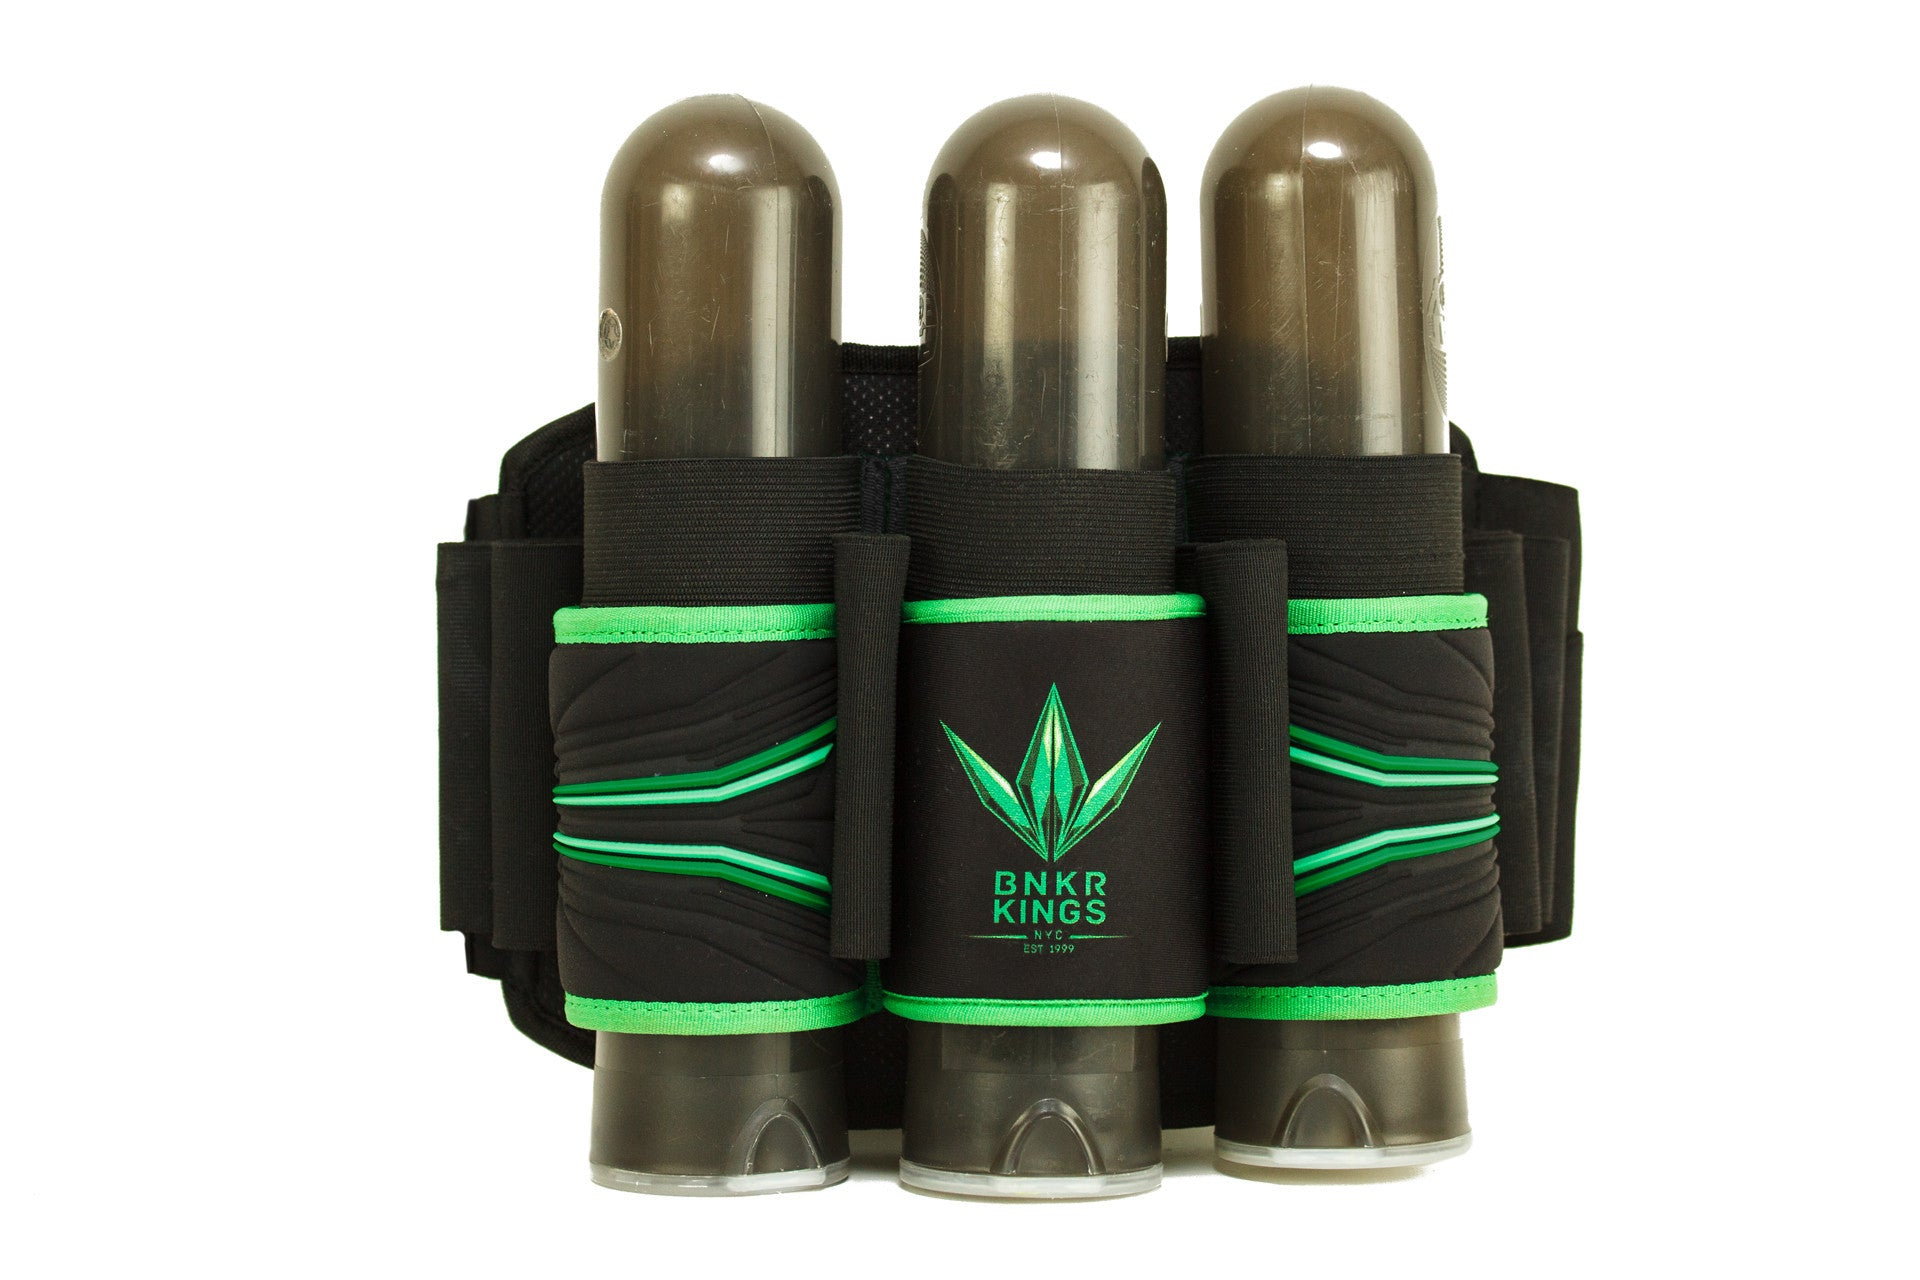 Lime Bunker Kings Nano 3 4 Pod Pack